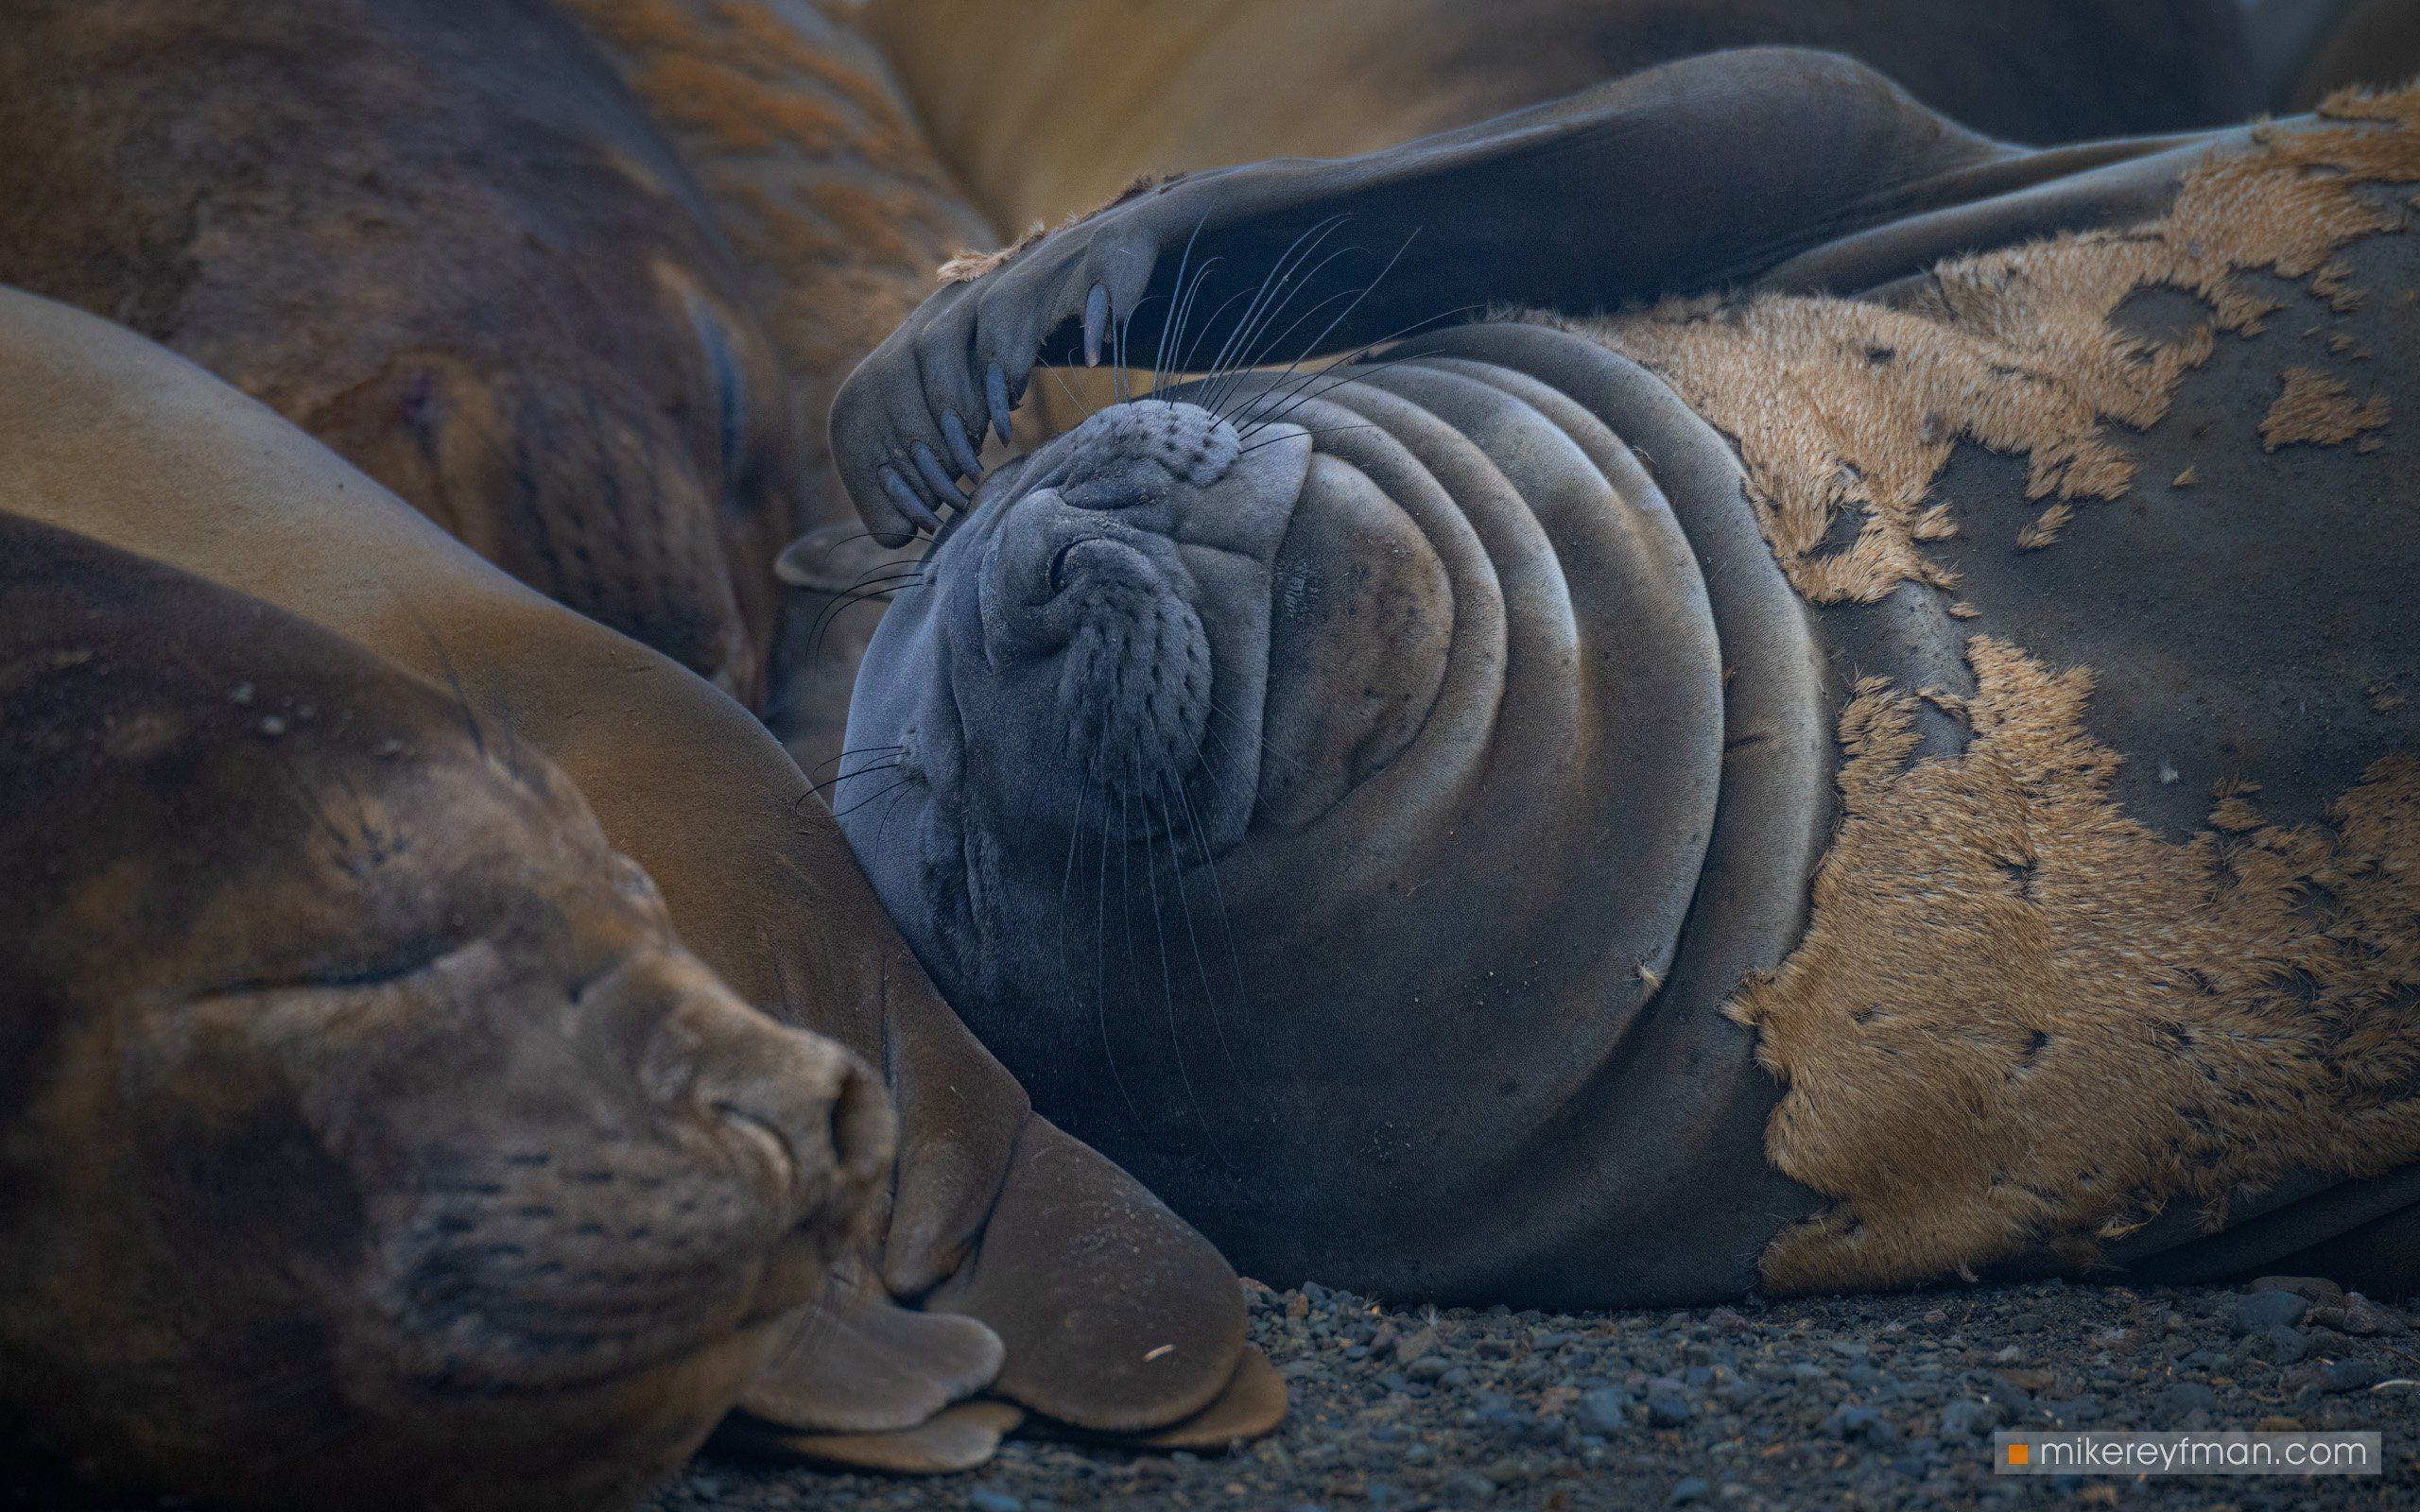 southern_elephant_seal, yankee_harbour, greenwich_island, shetland_islands, antarctica, animal_wildlife, animals_in_the_wild, antarctica, aquatic_mammal, beach, male_animal, nature, no_people, the_natural_world, Майк Рейфман